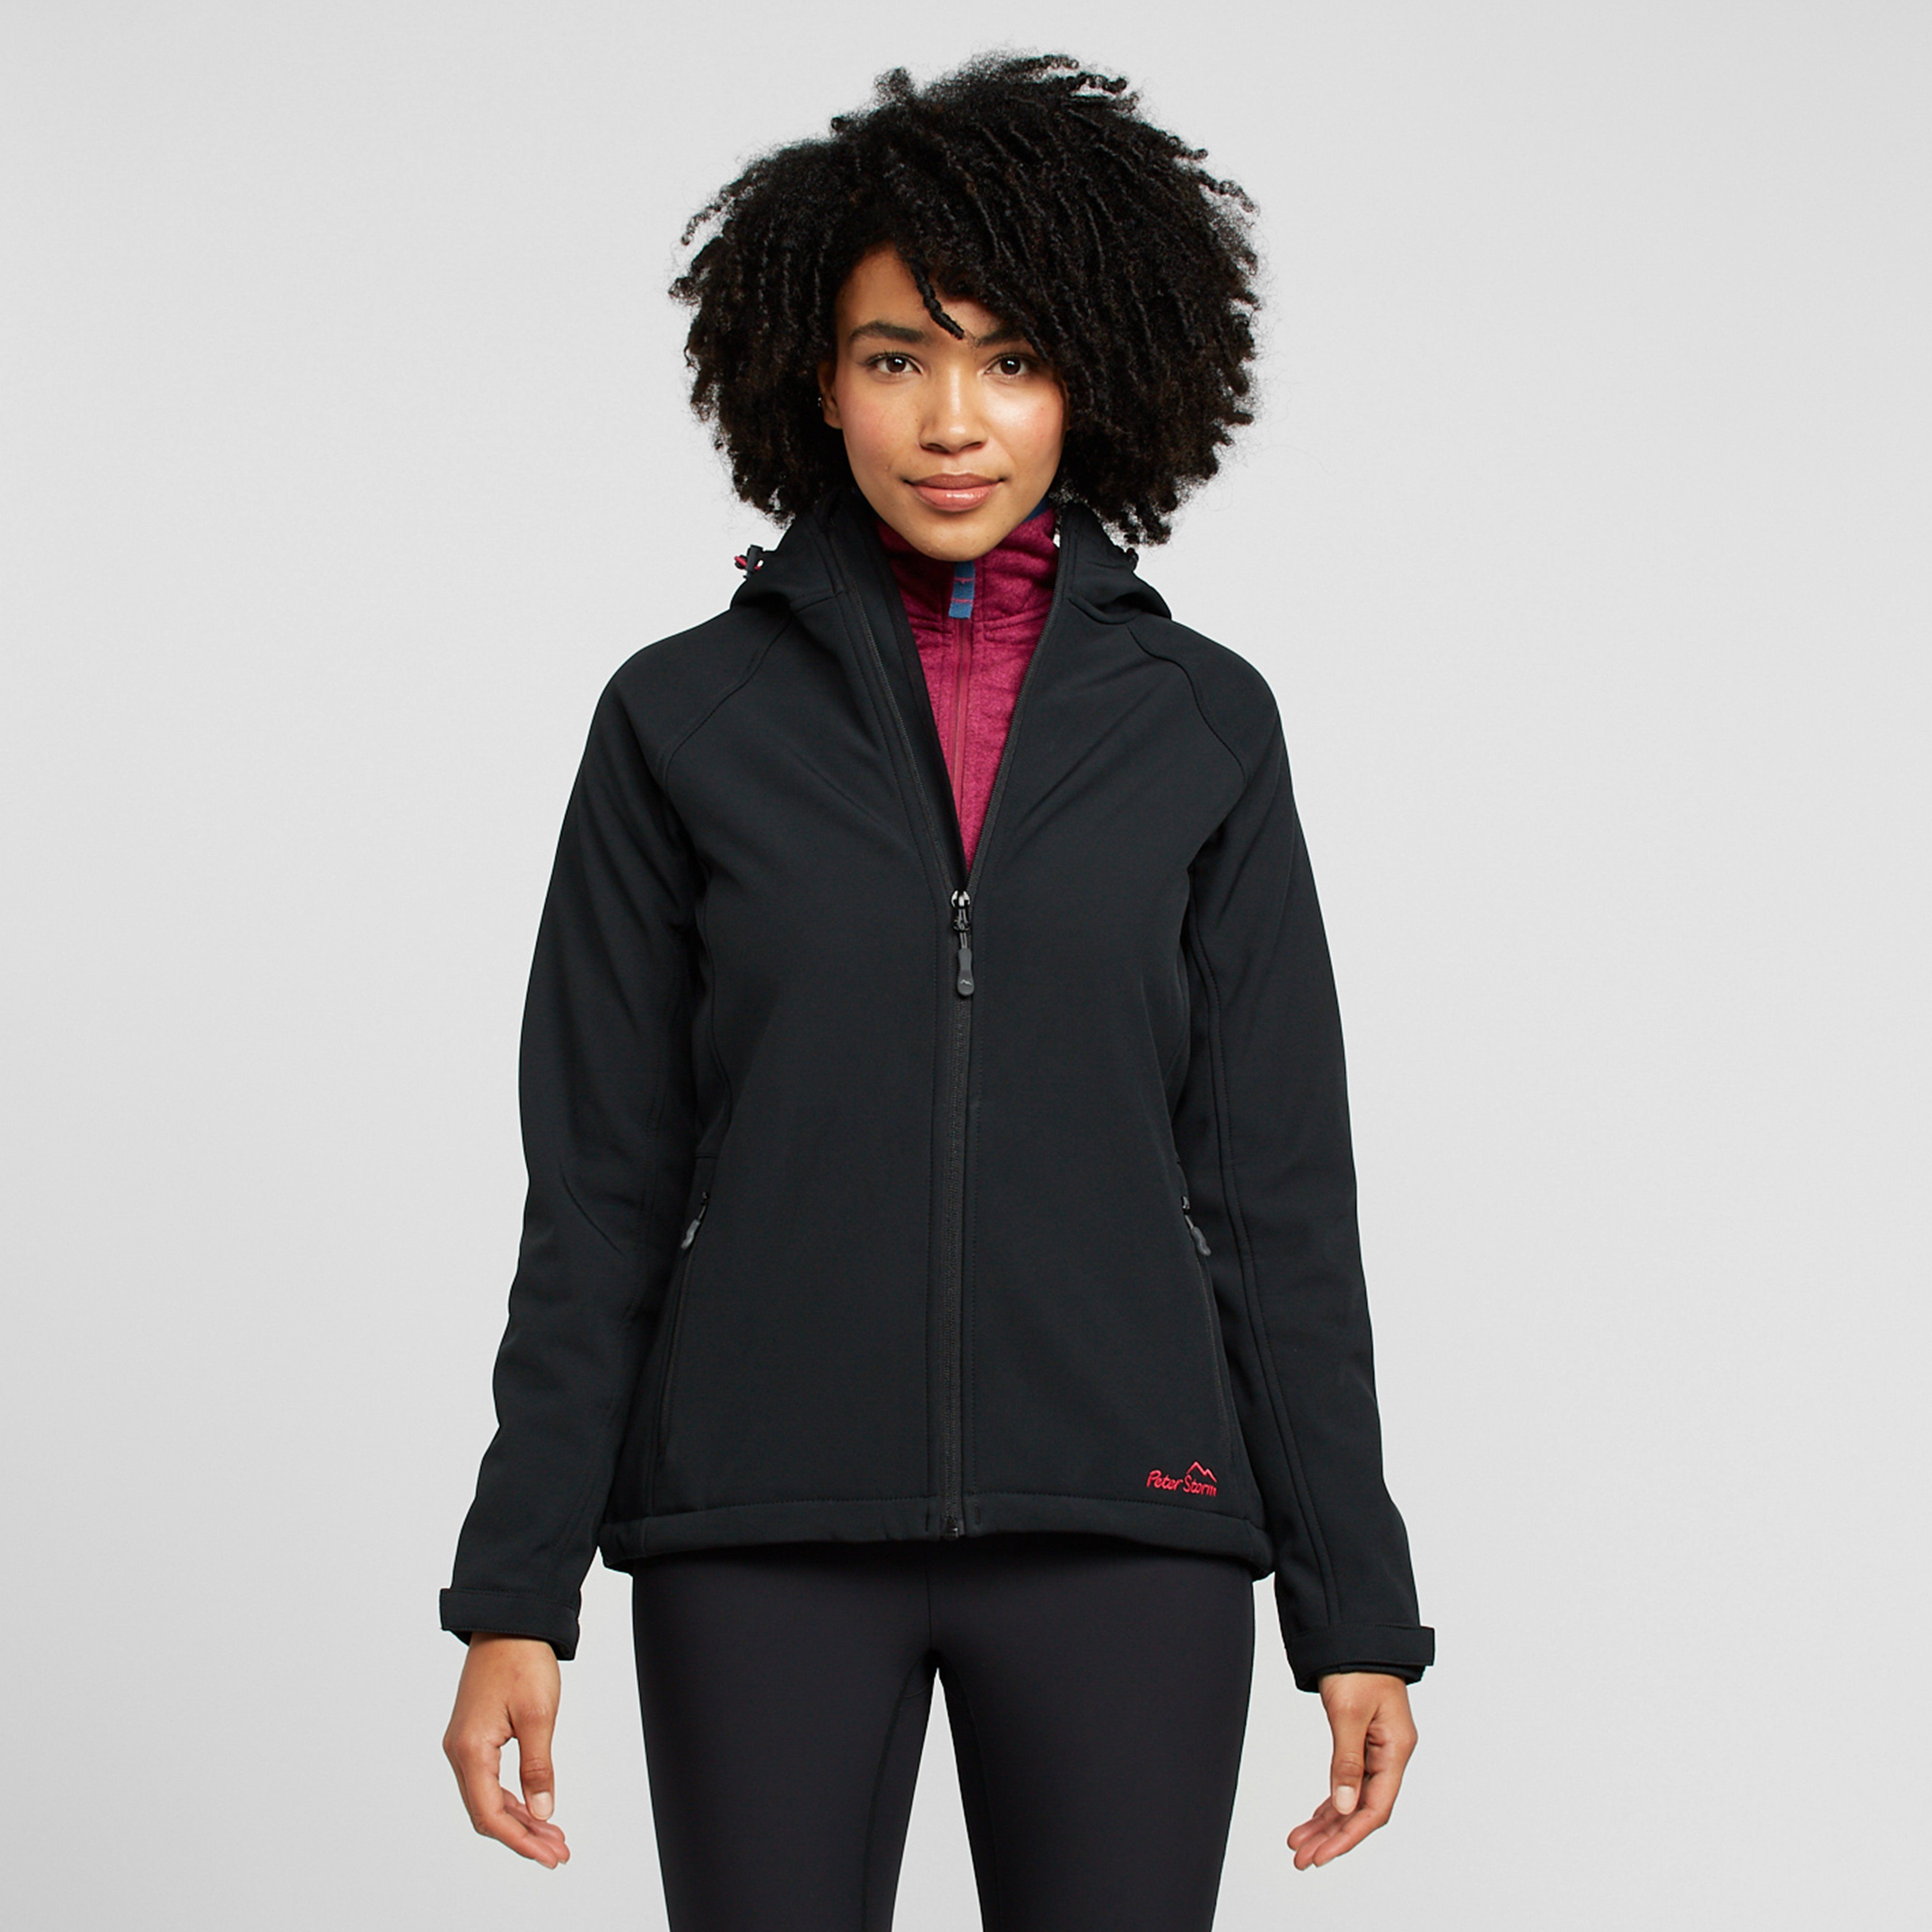 PETER STORM Women's Hooded Softshell Jacket